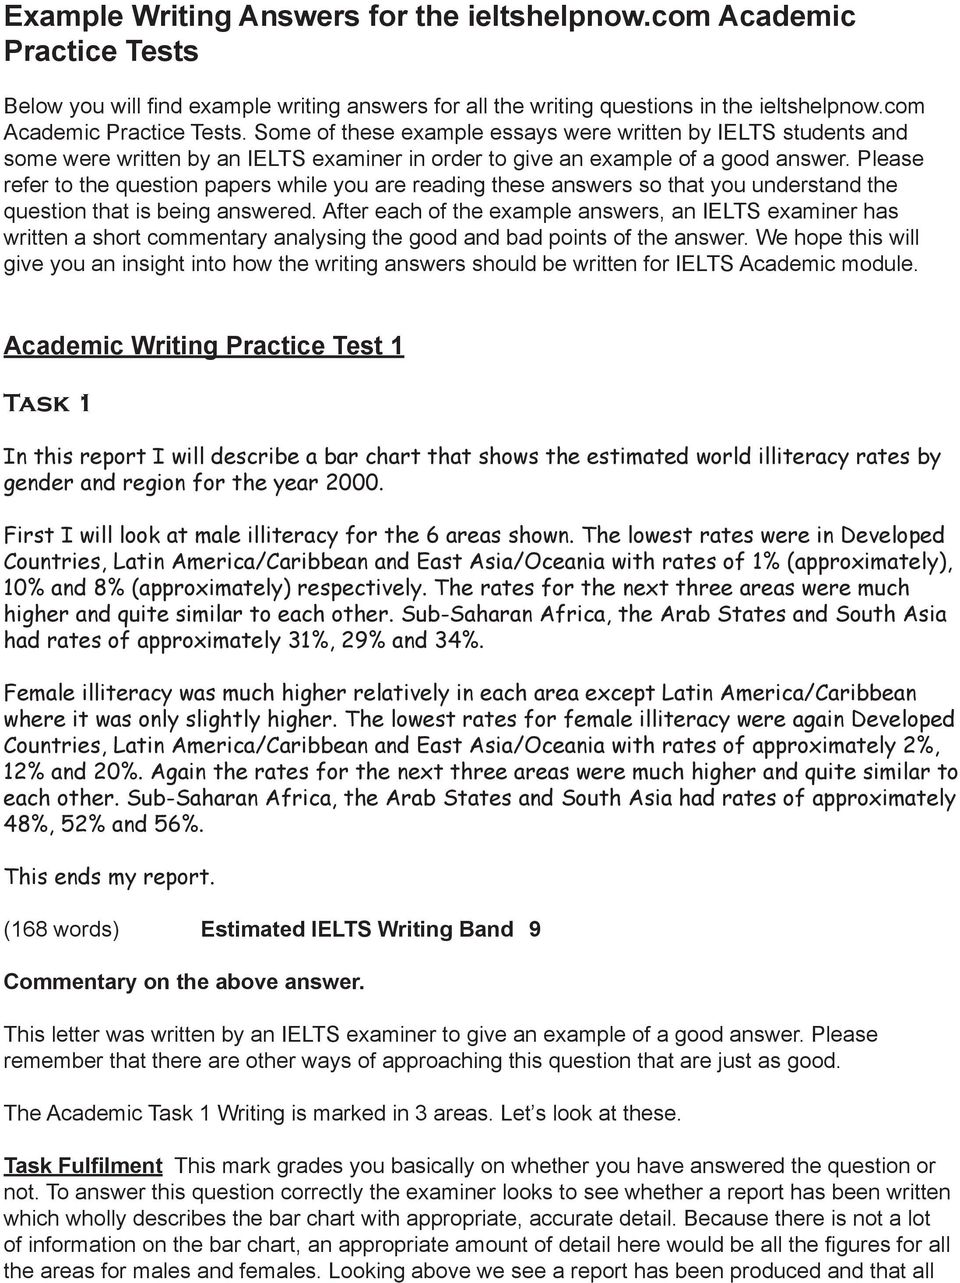 Example Writing Answers for the ieltshelpnow com Academic